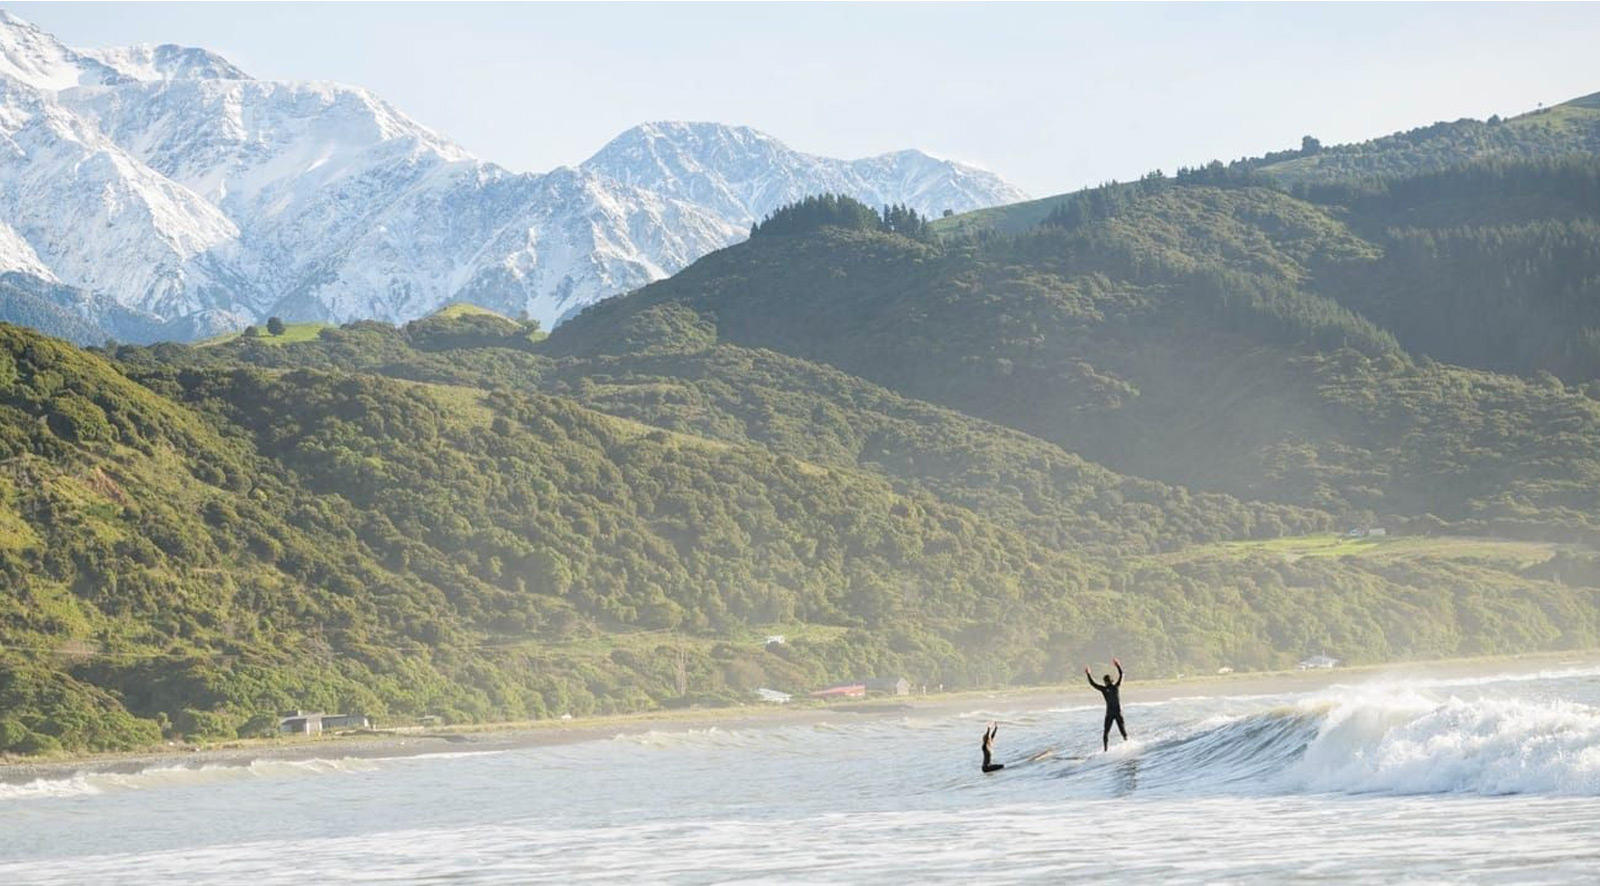 two surfers celebrate great waves with lush hills and snow-capped mountains on the horizon